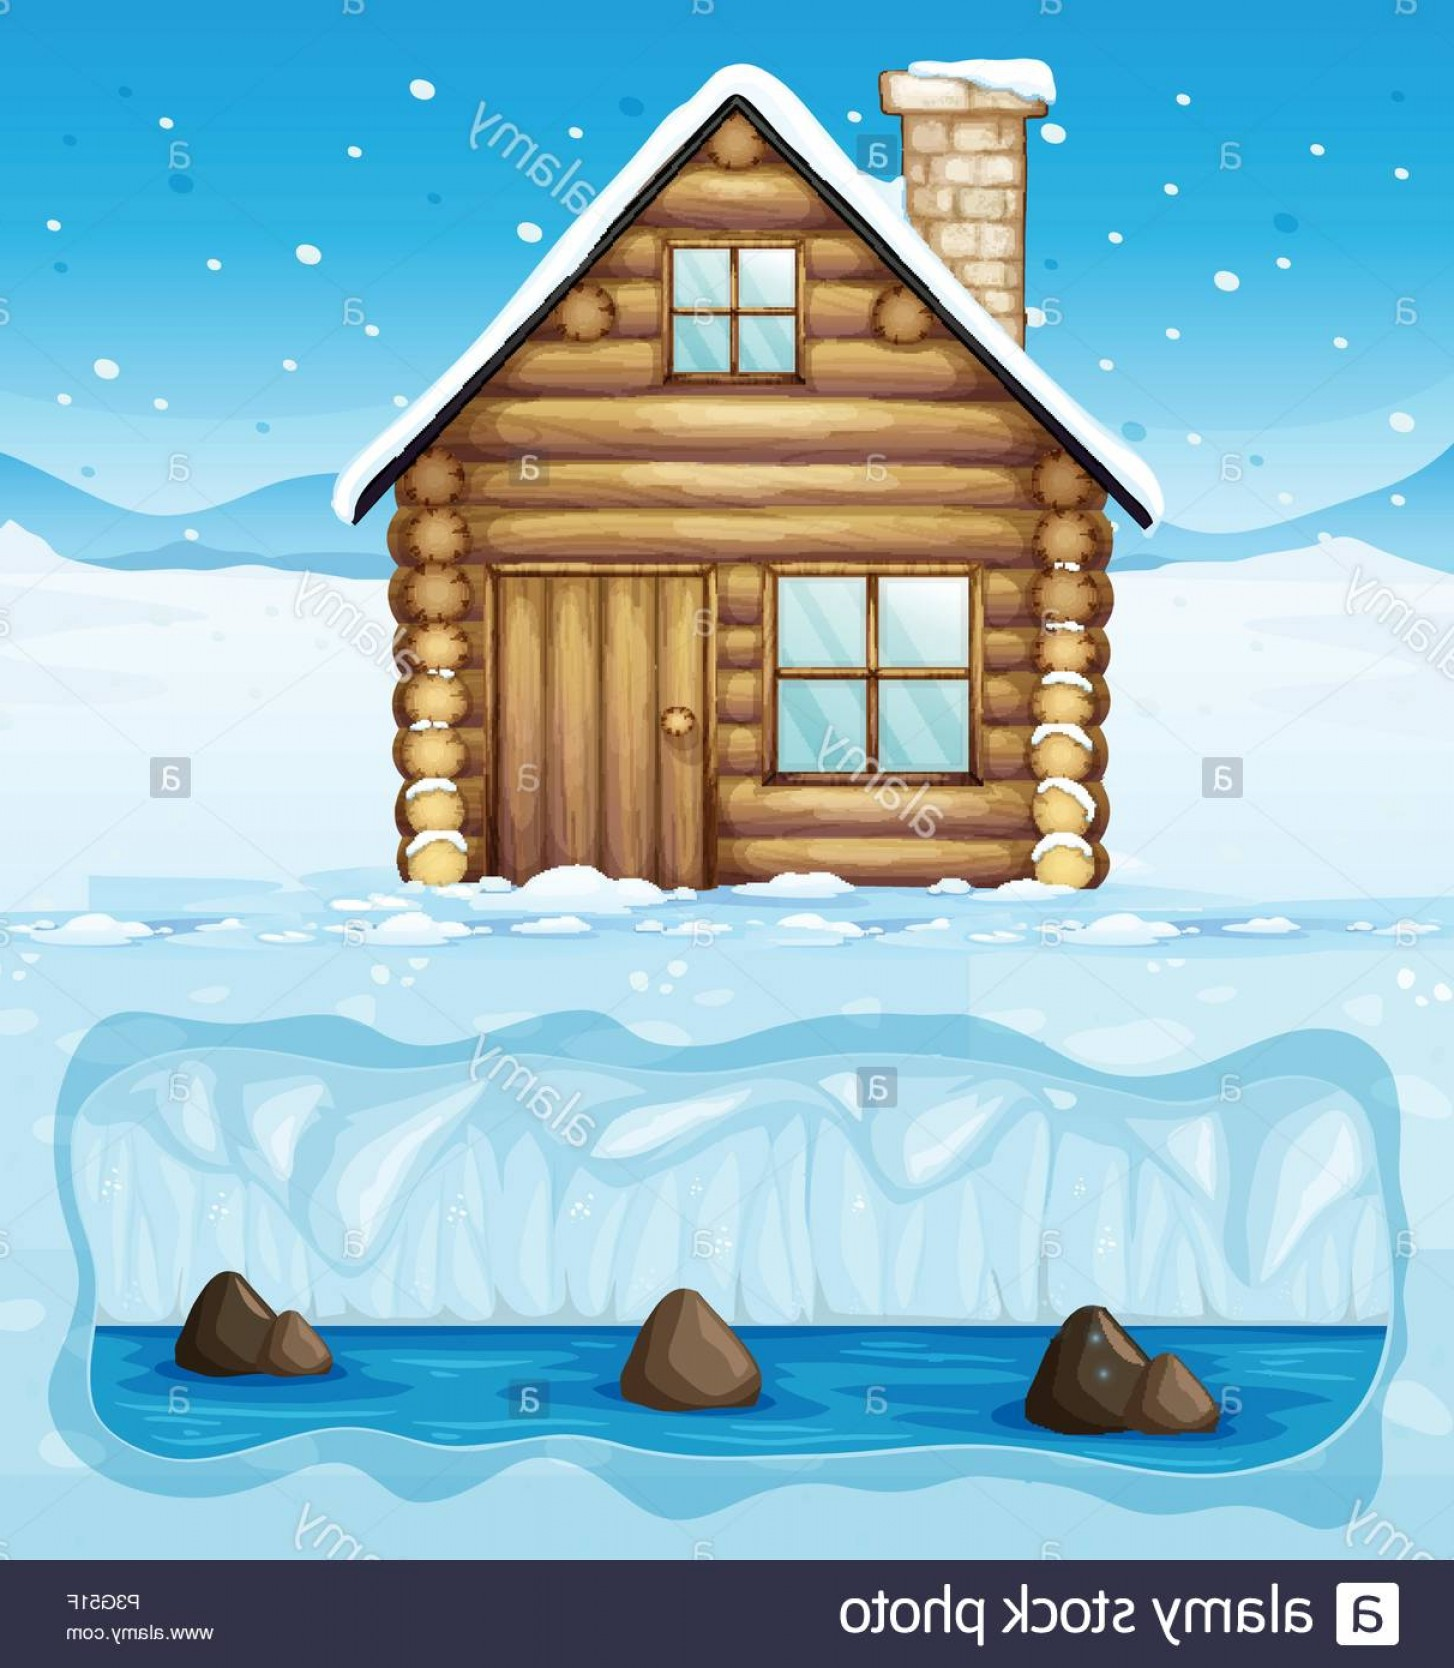 North Pole Landscape Vector: A Winter Hut In North Pole Illustration Image